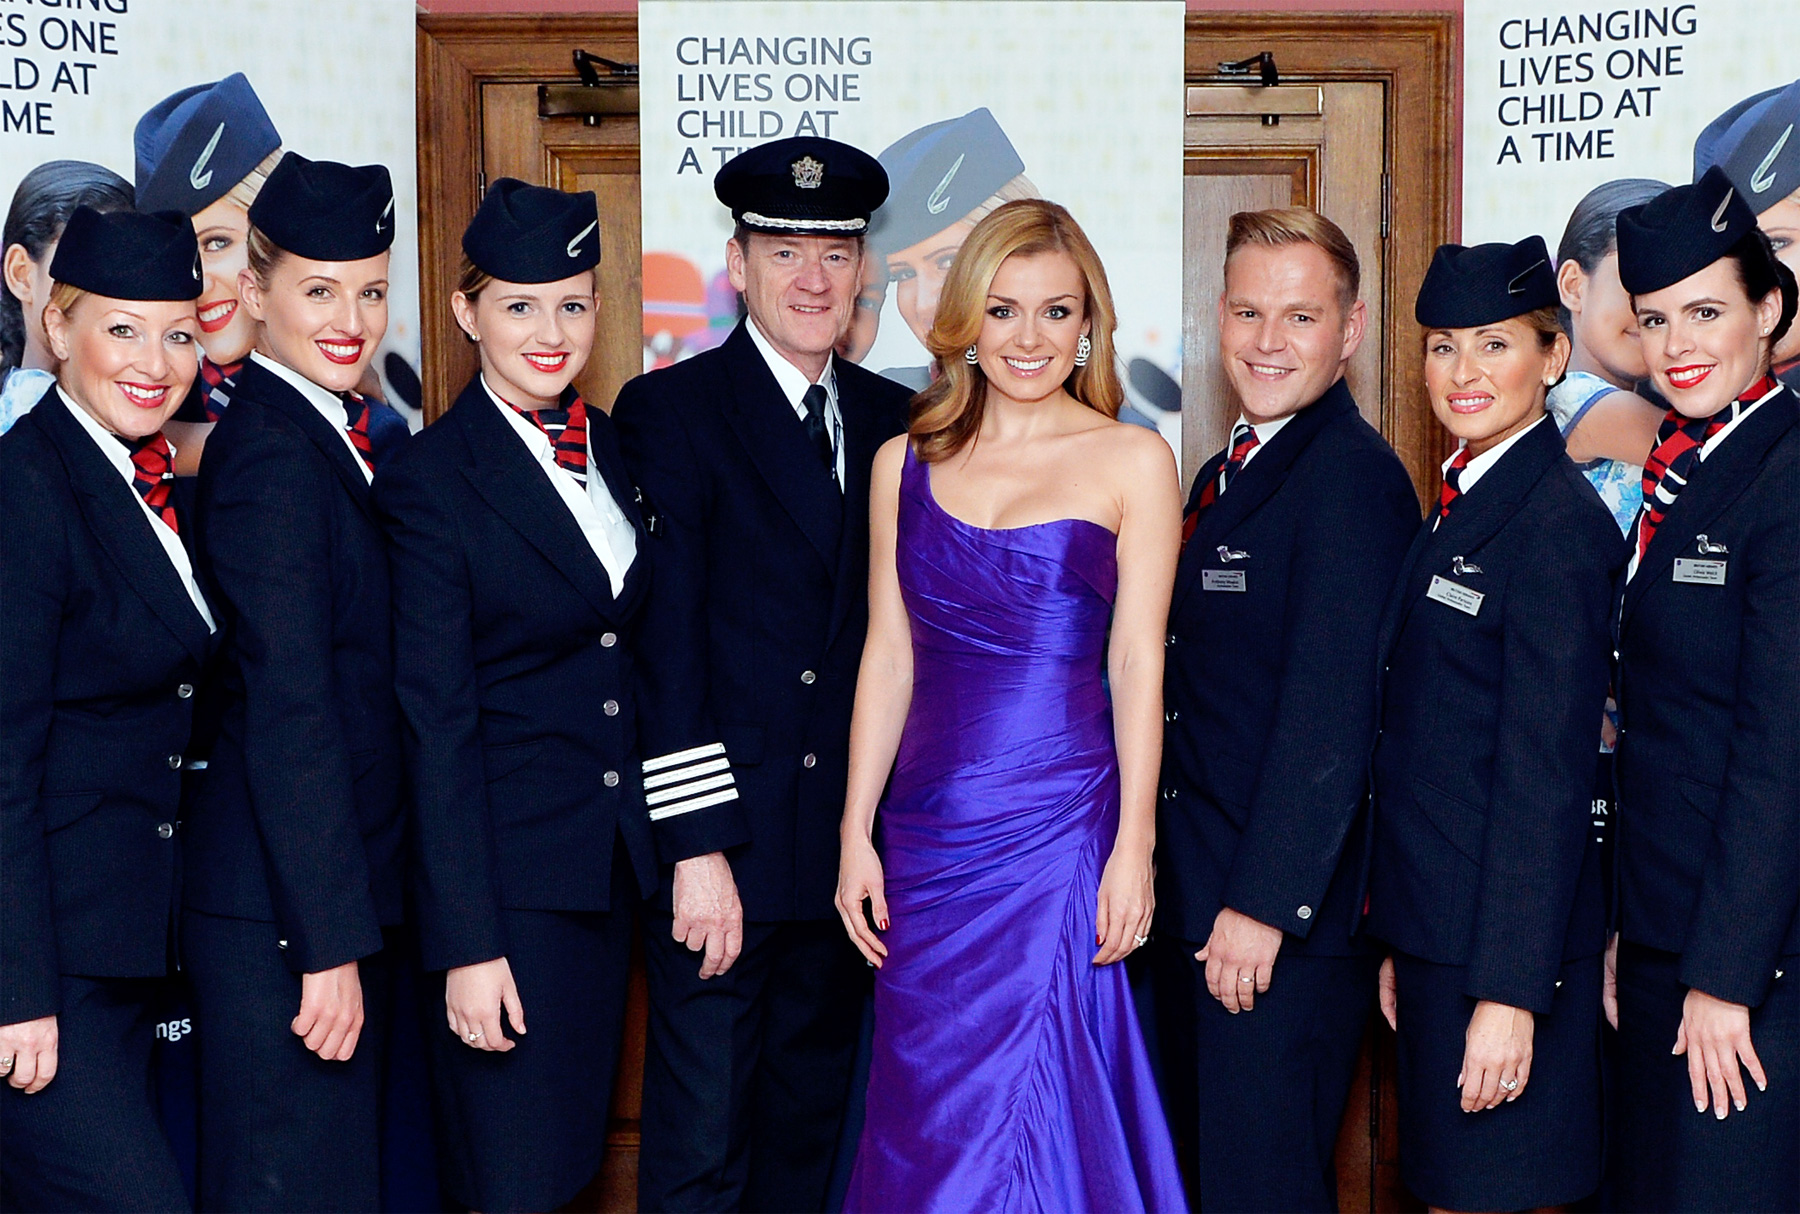 Well Known Faces Support The British Airways' twelfth annual Wentworth Ball